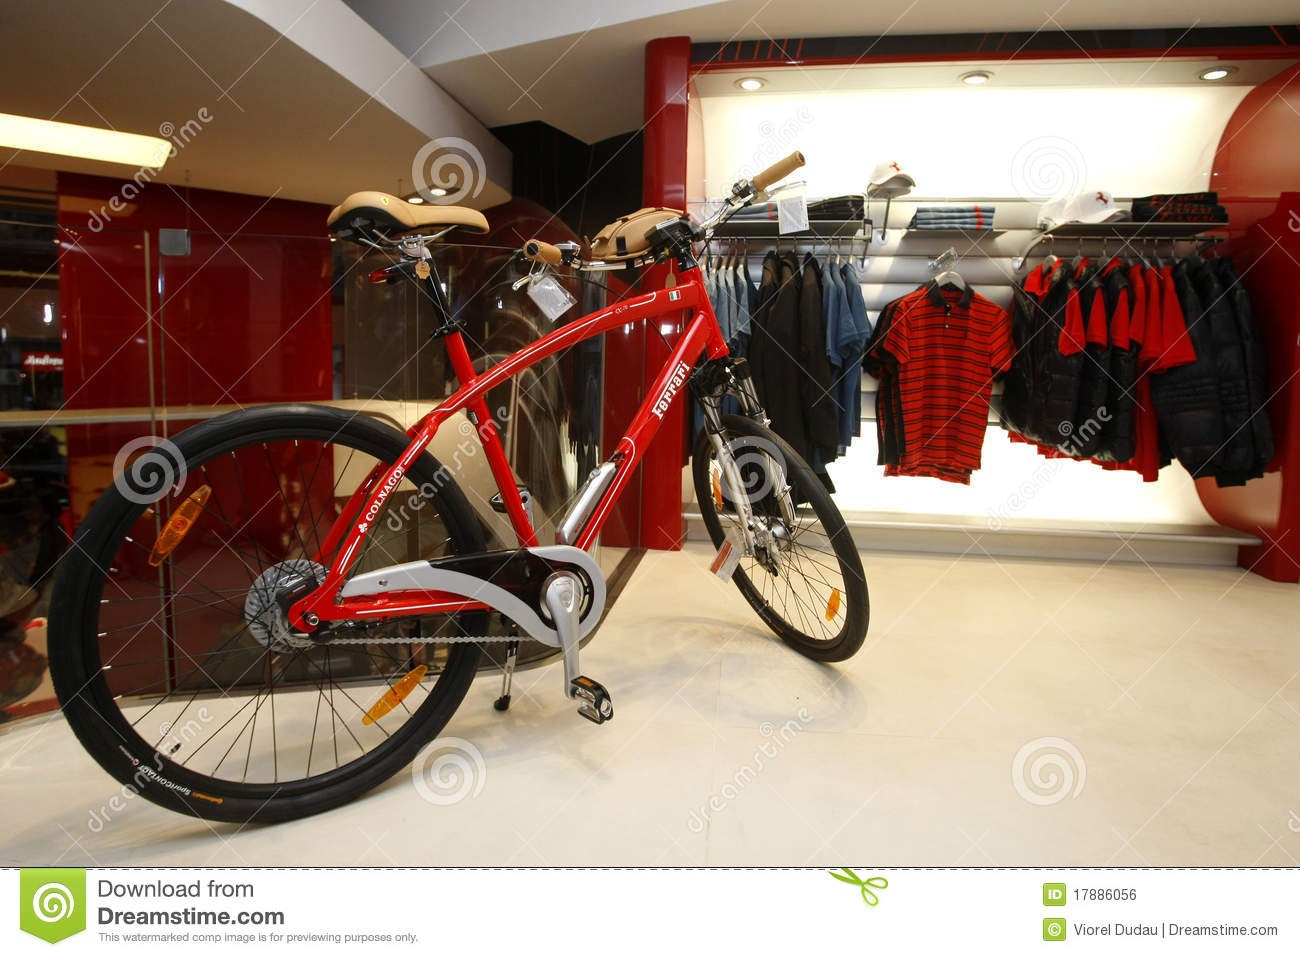 4d4911089 A bicycle and clothes displayed in a new Ferrari Store